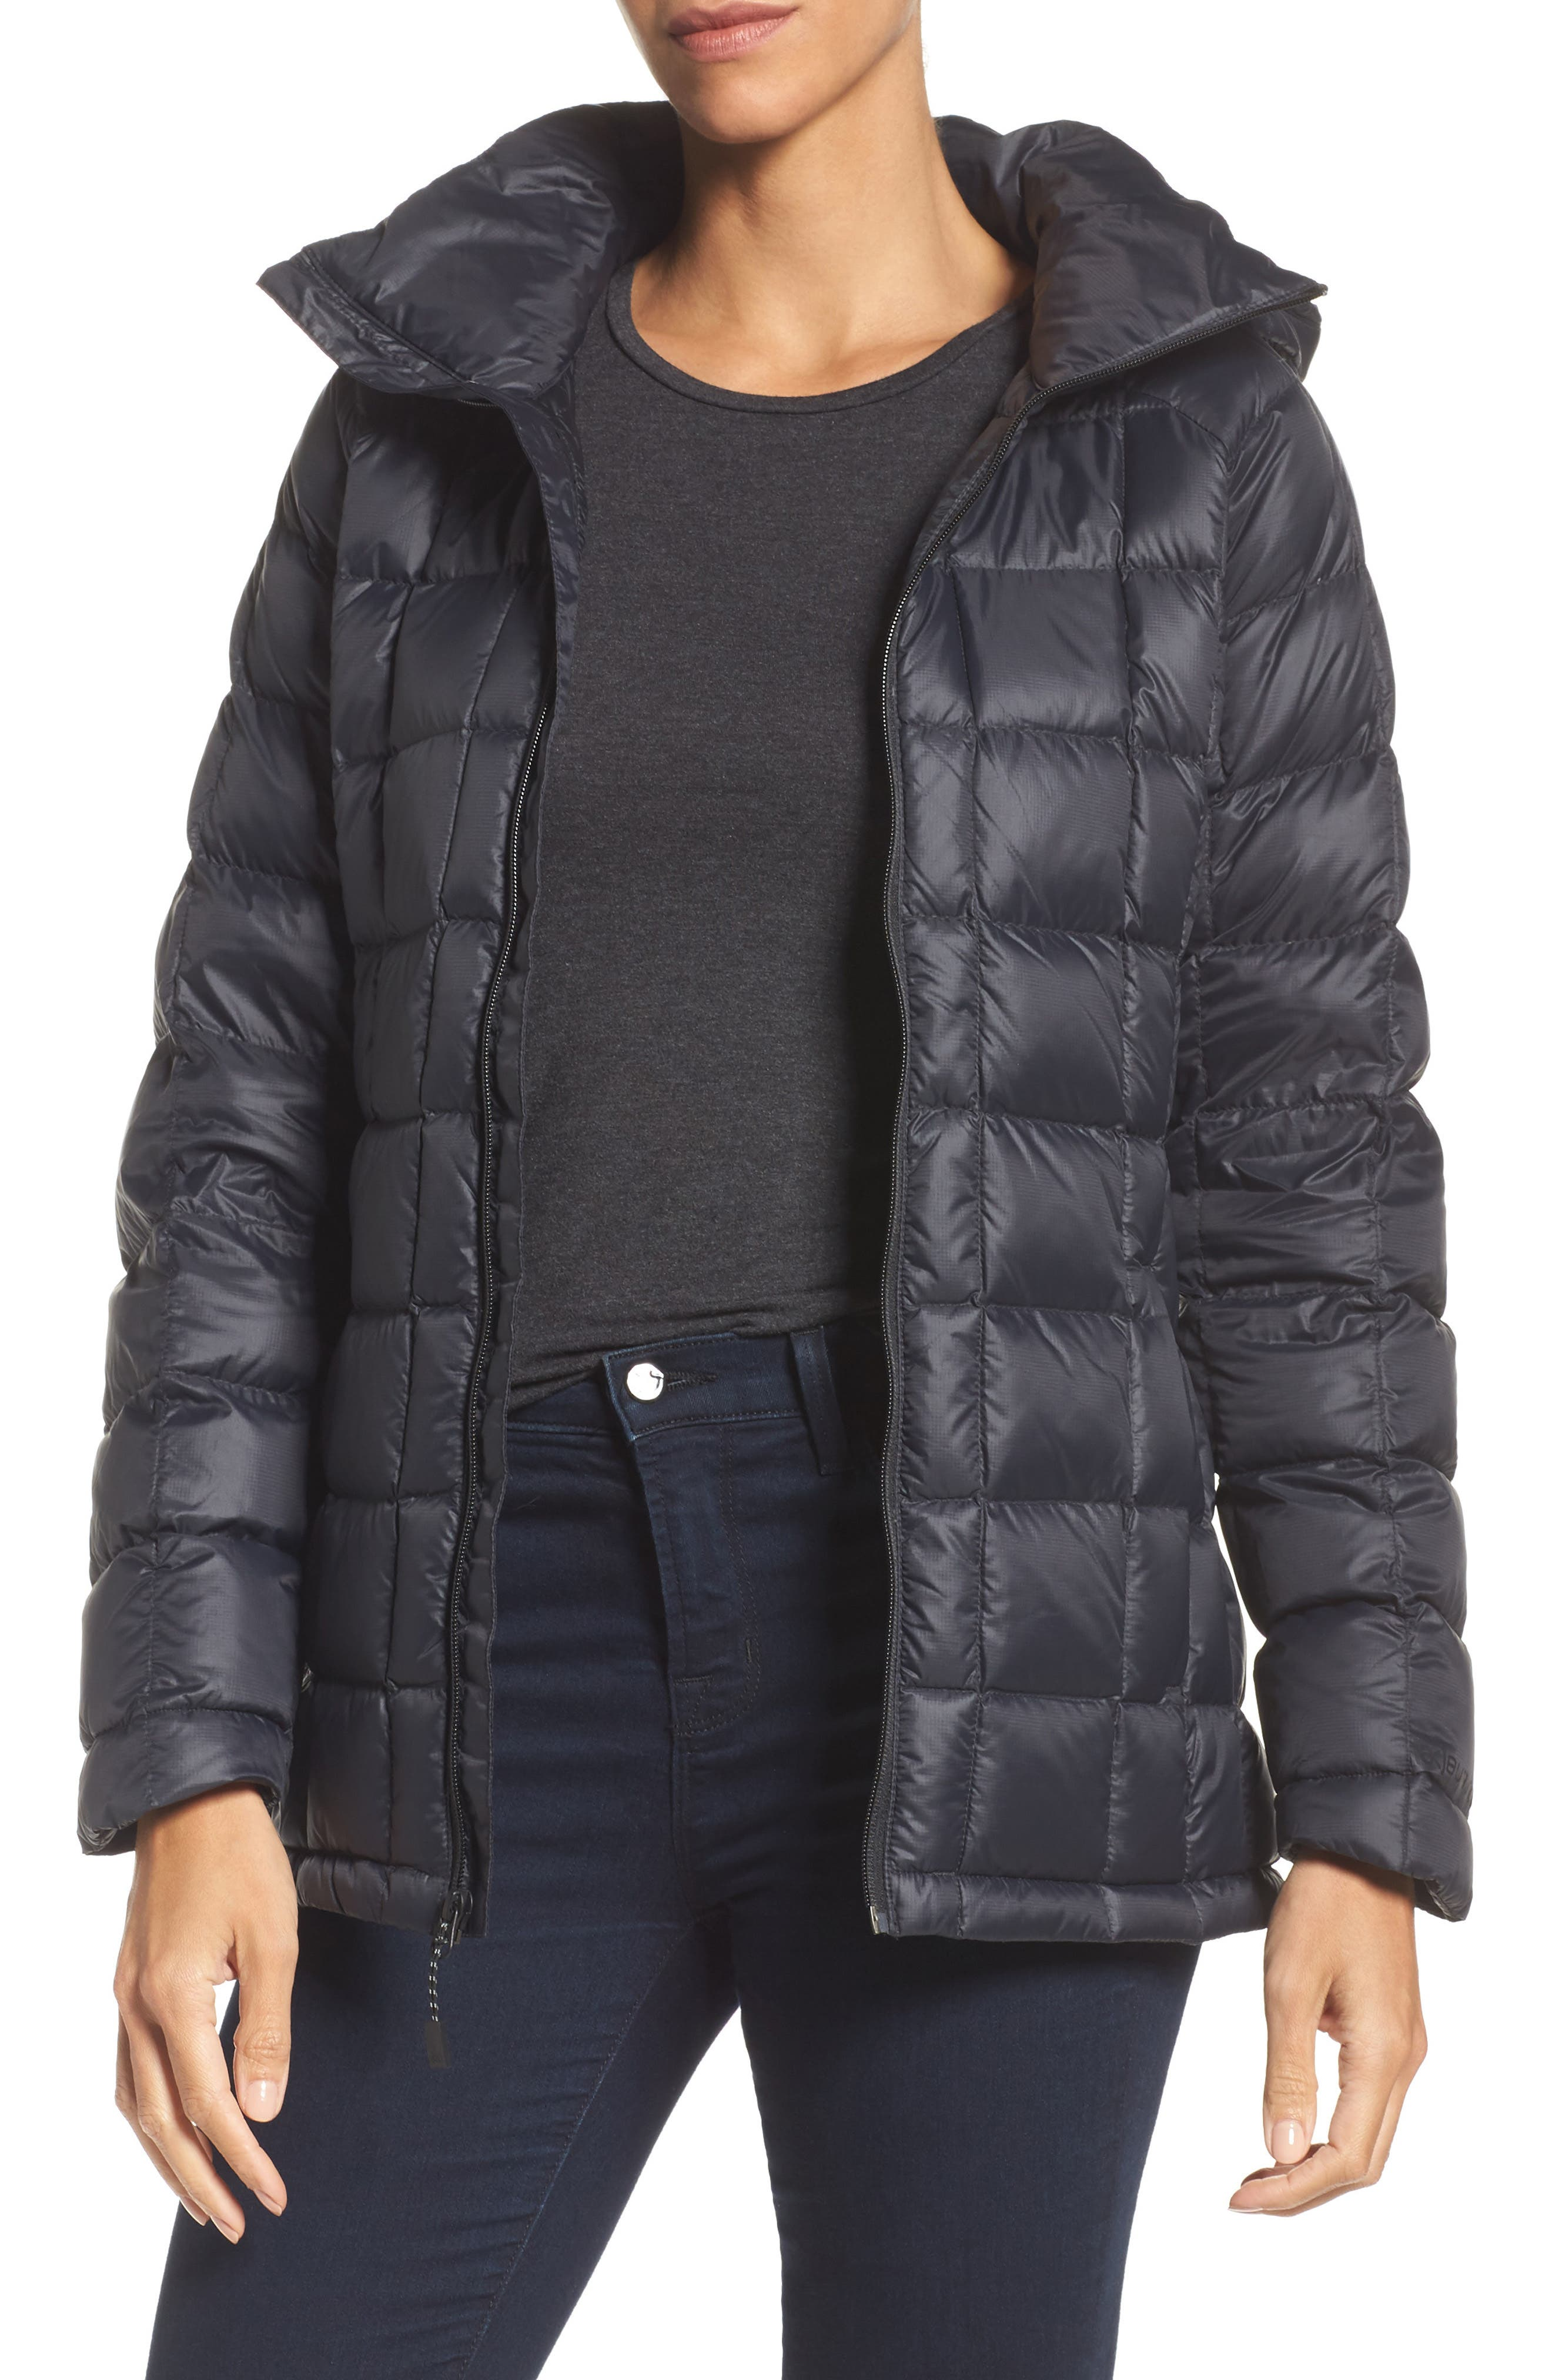 AK Baker Waterproof Quilted Down Insulator Jacket with Removable Hood,                             Main thumbnail 1, color,                             True Black